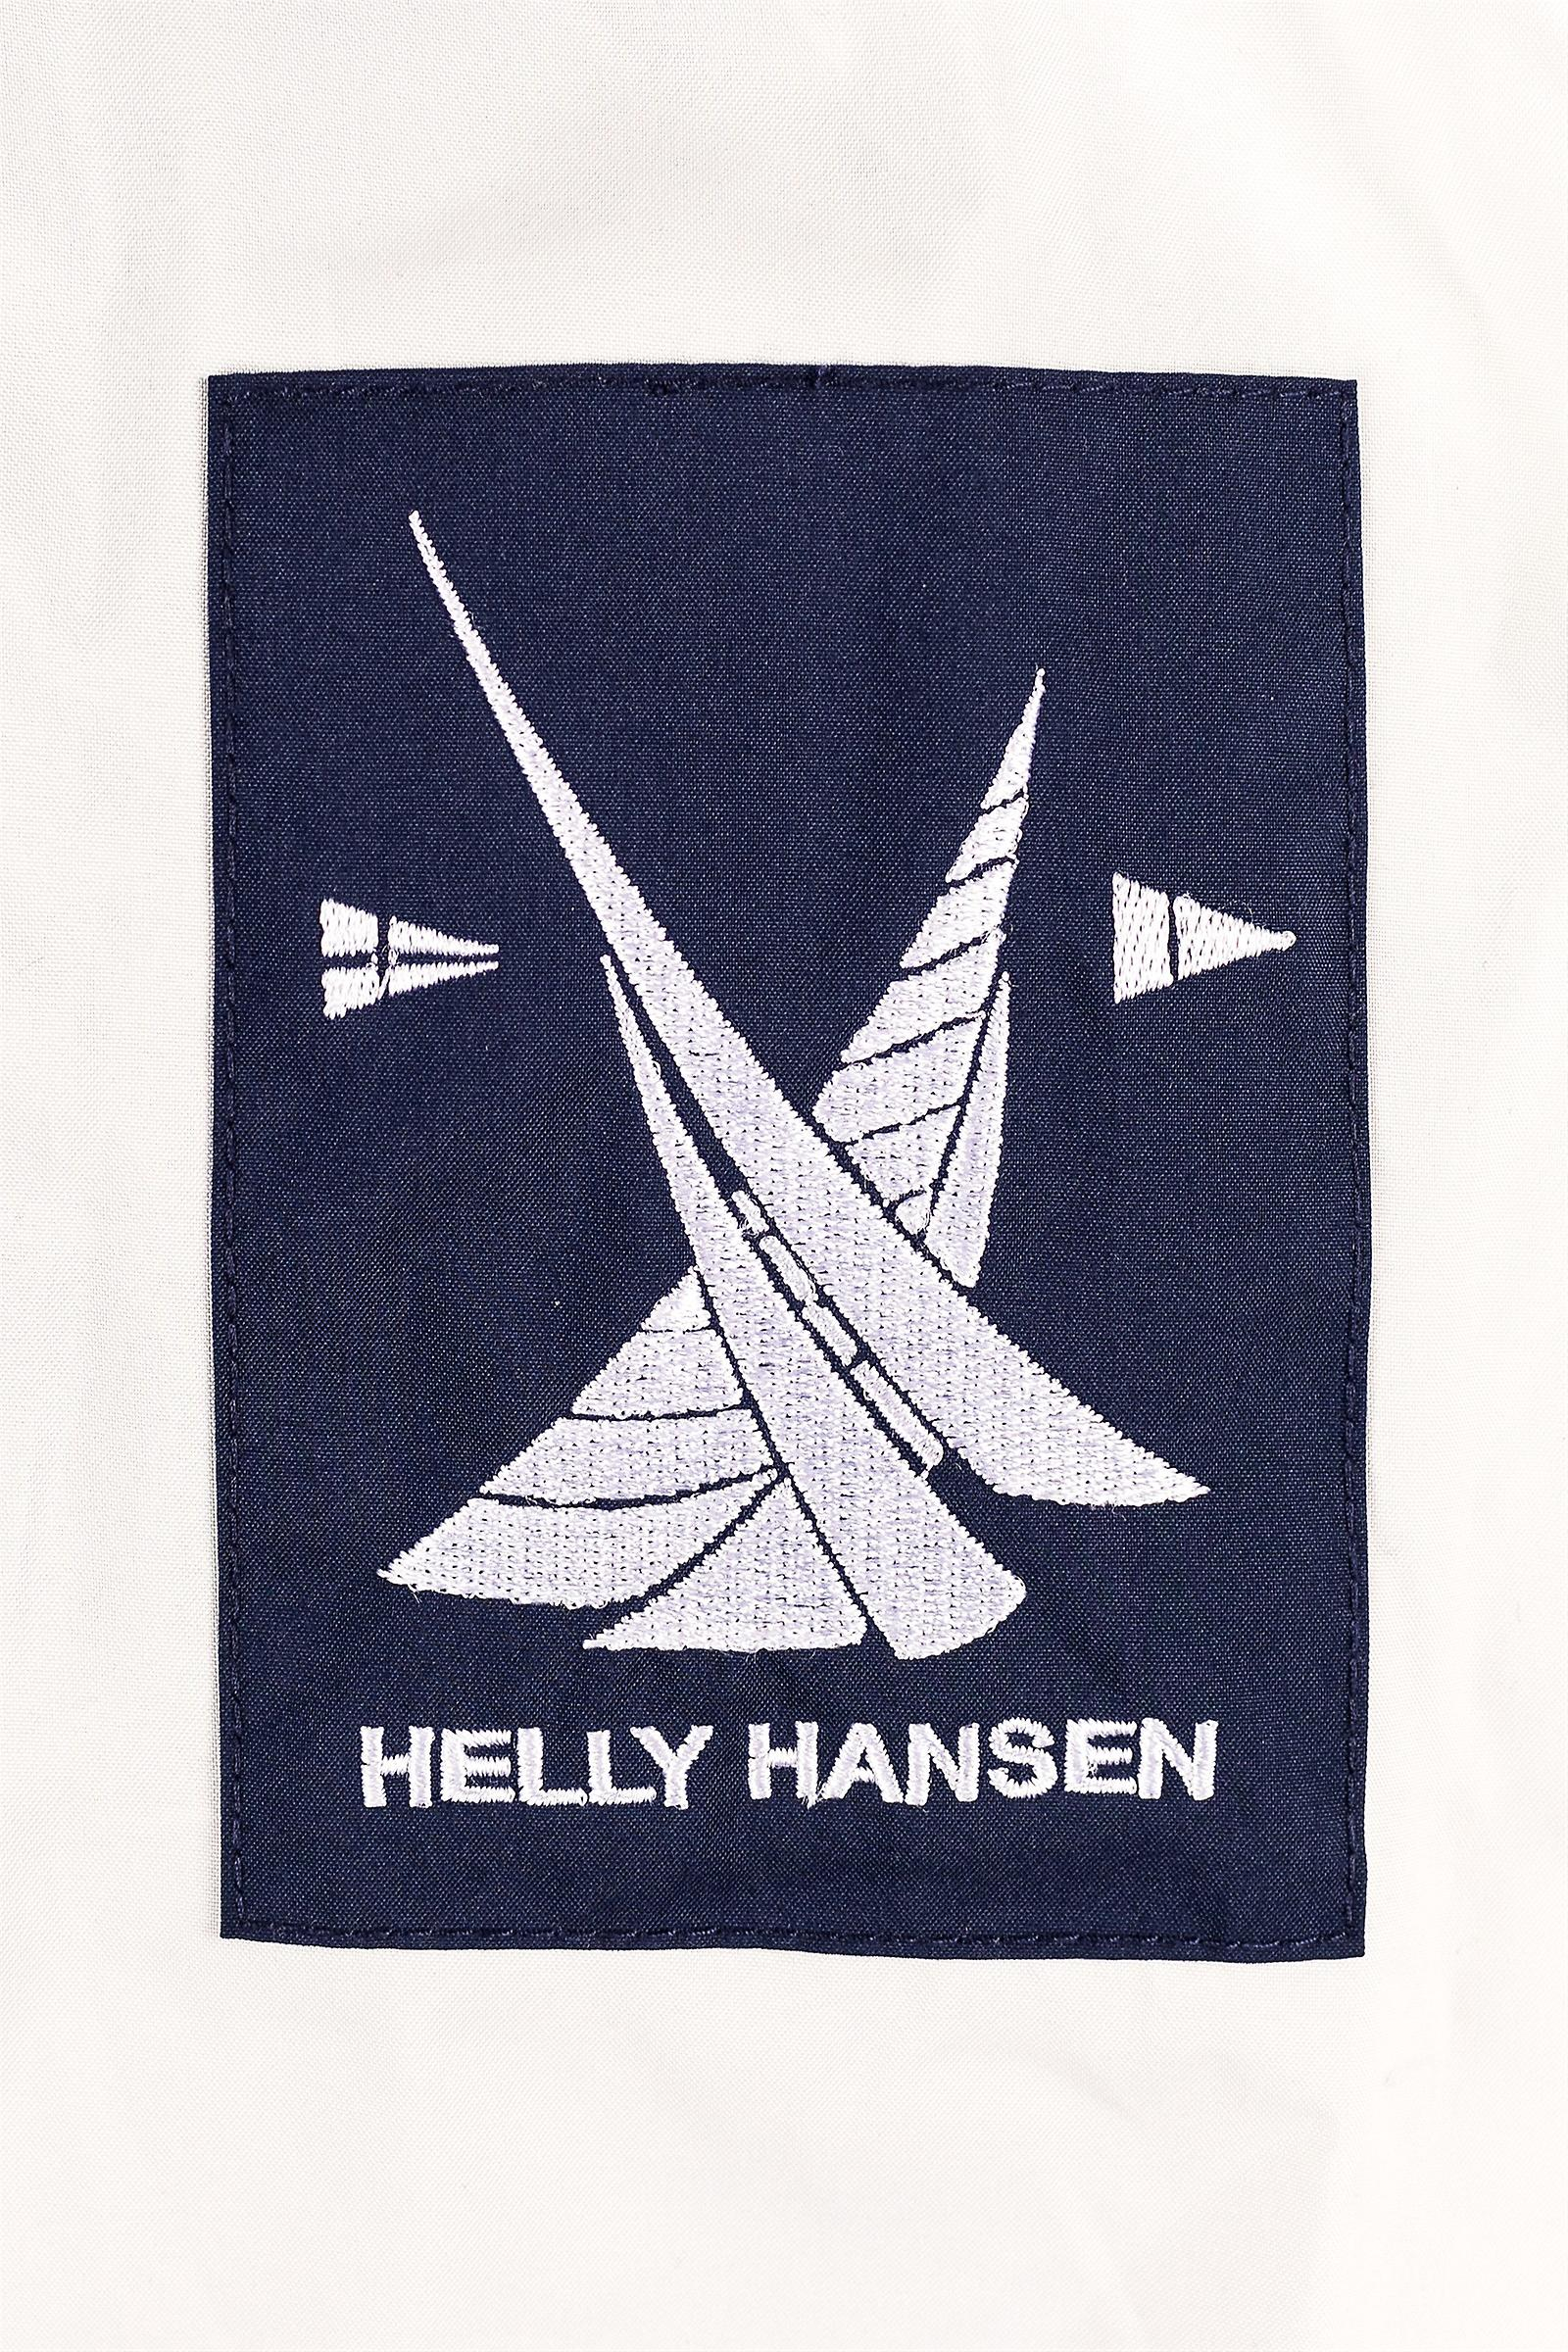 Retro Hansen Hansen Helly Herren Retro Herren Helly Windbreaker Windbreaker Helly Herren Hansen cK1FlJT3